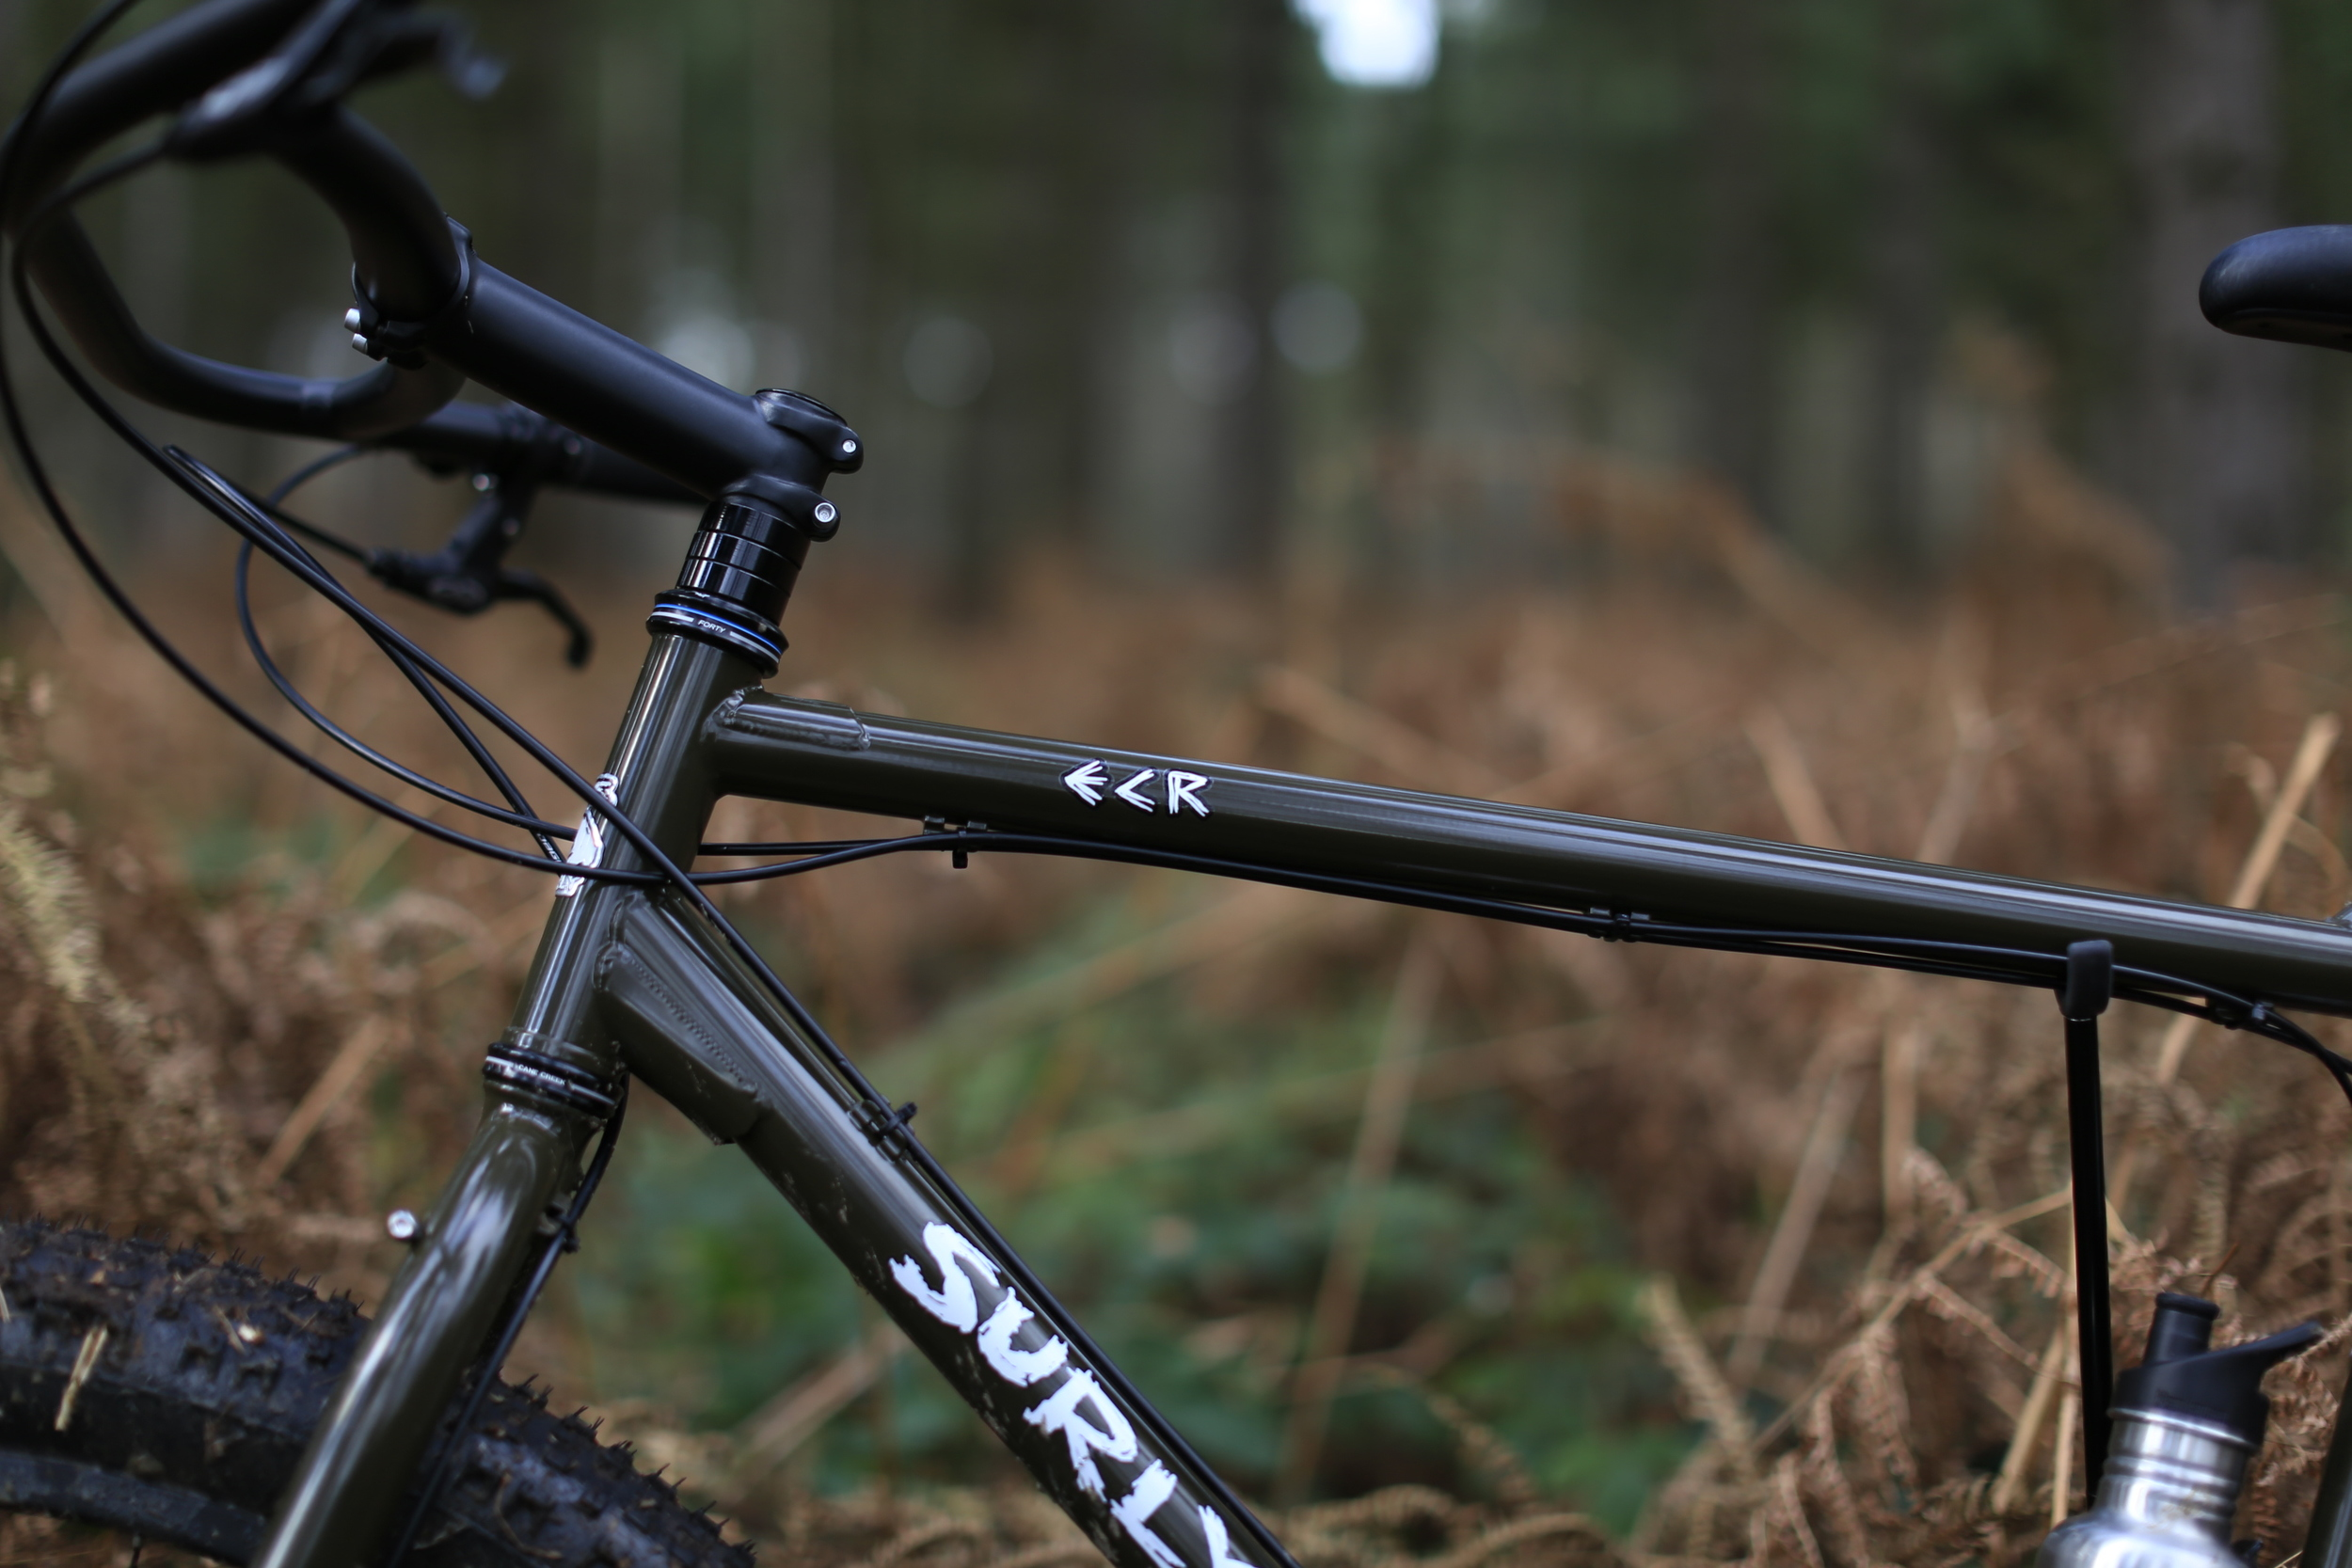 surly, surly ecr, woods, singletrack, photo, photography, canon, canon 6d